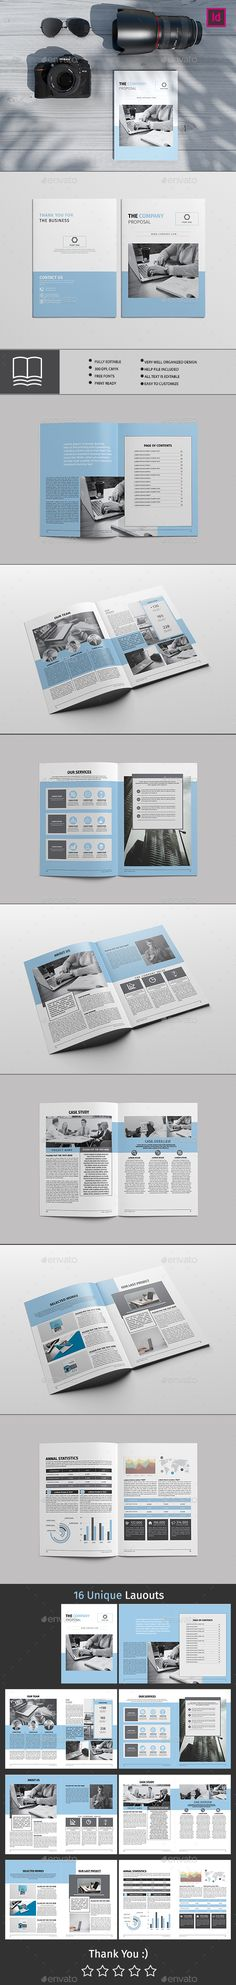 Proposal — InDesign INDD #orange #booklet • Available here ➝ https://graphicriver.net/item/proposal/20727680?ref=pxcr